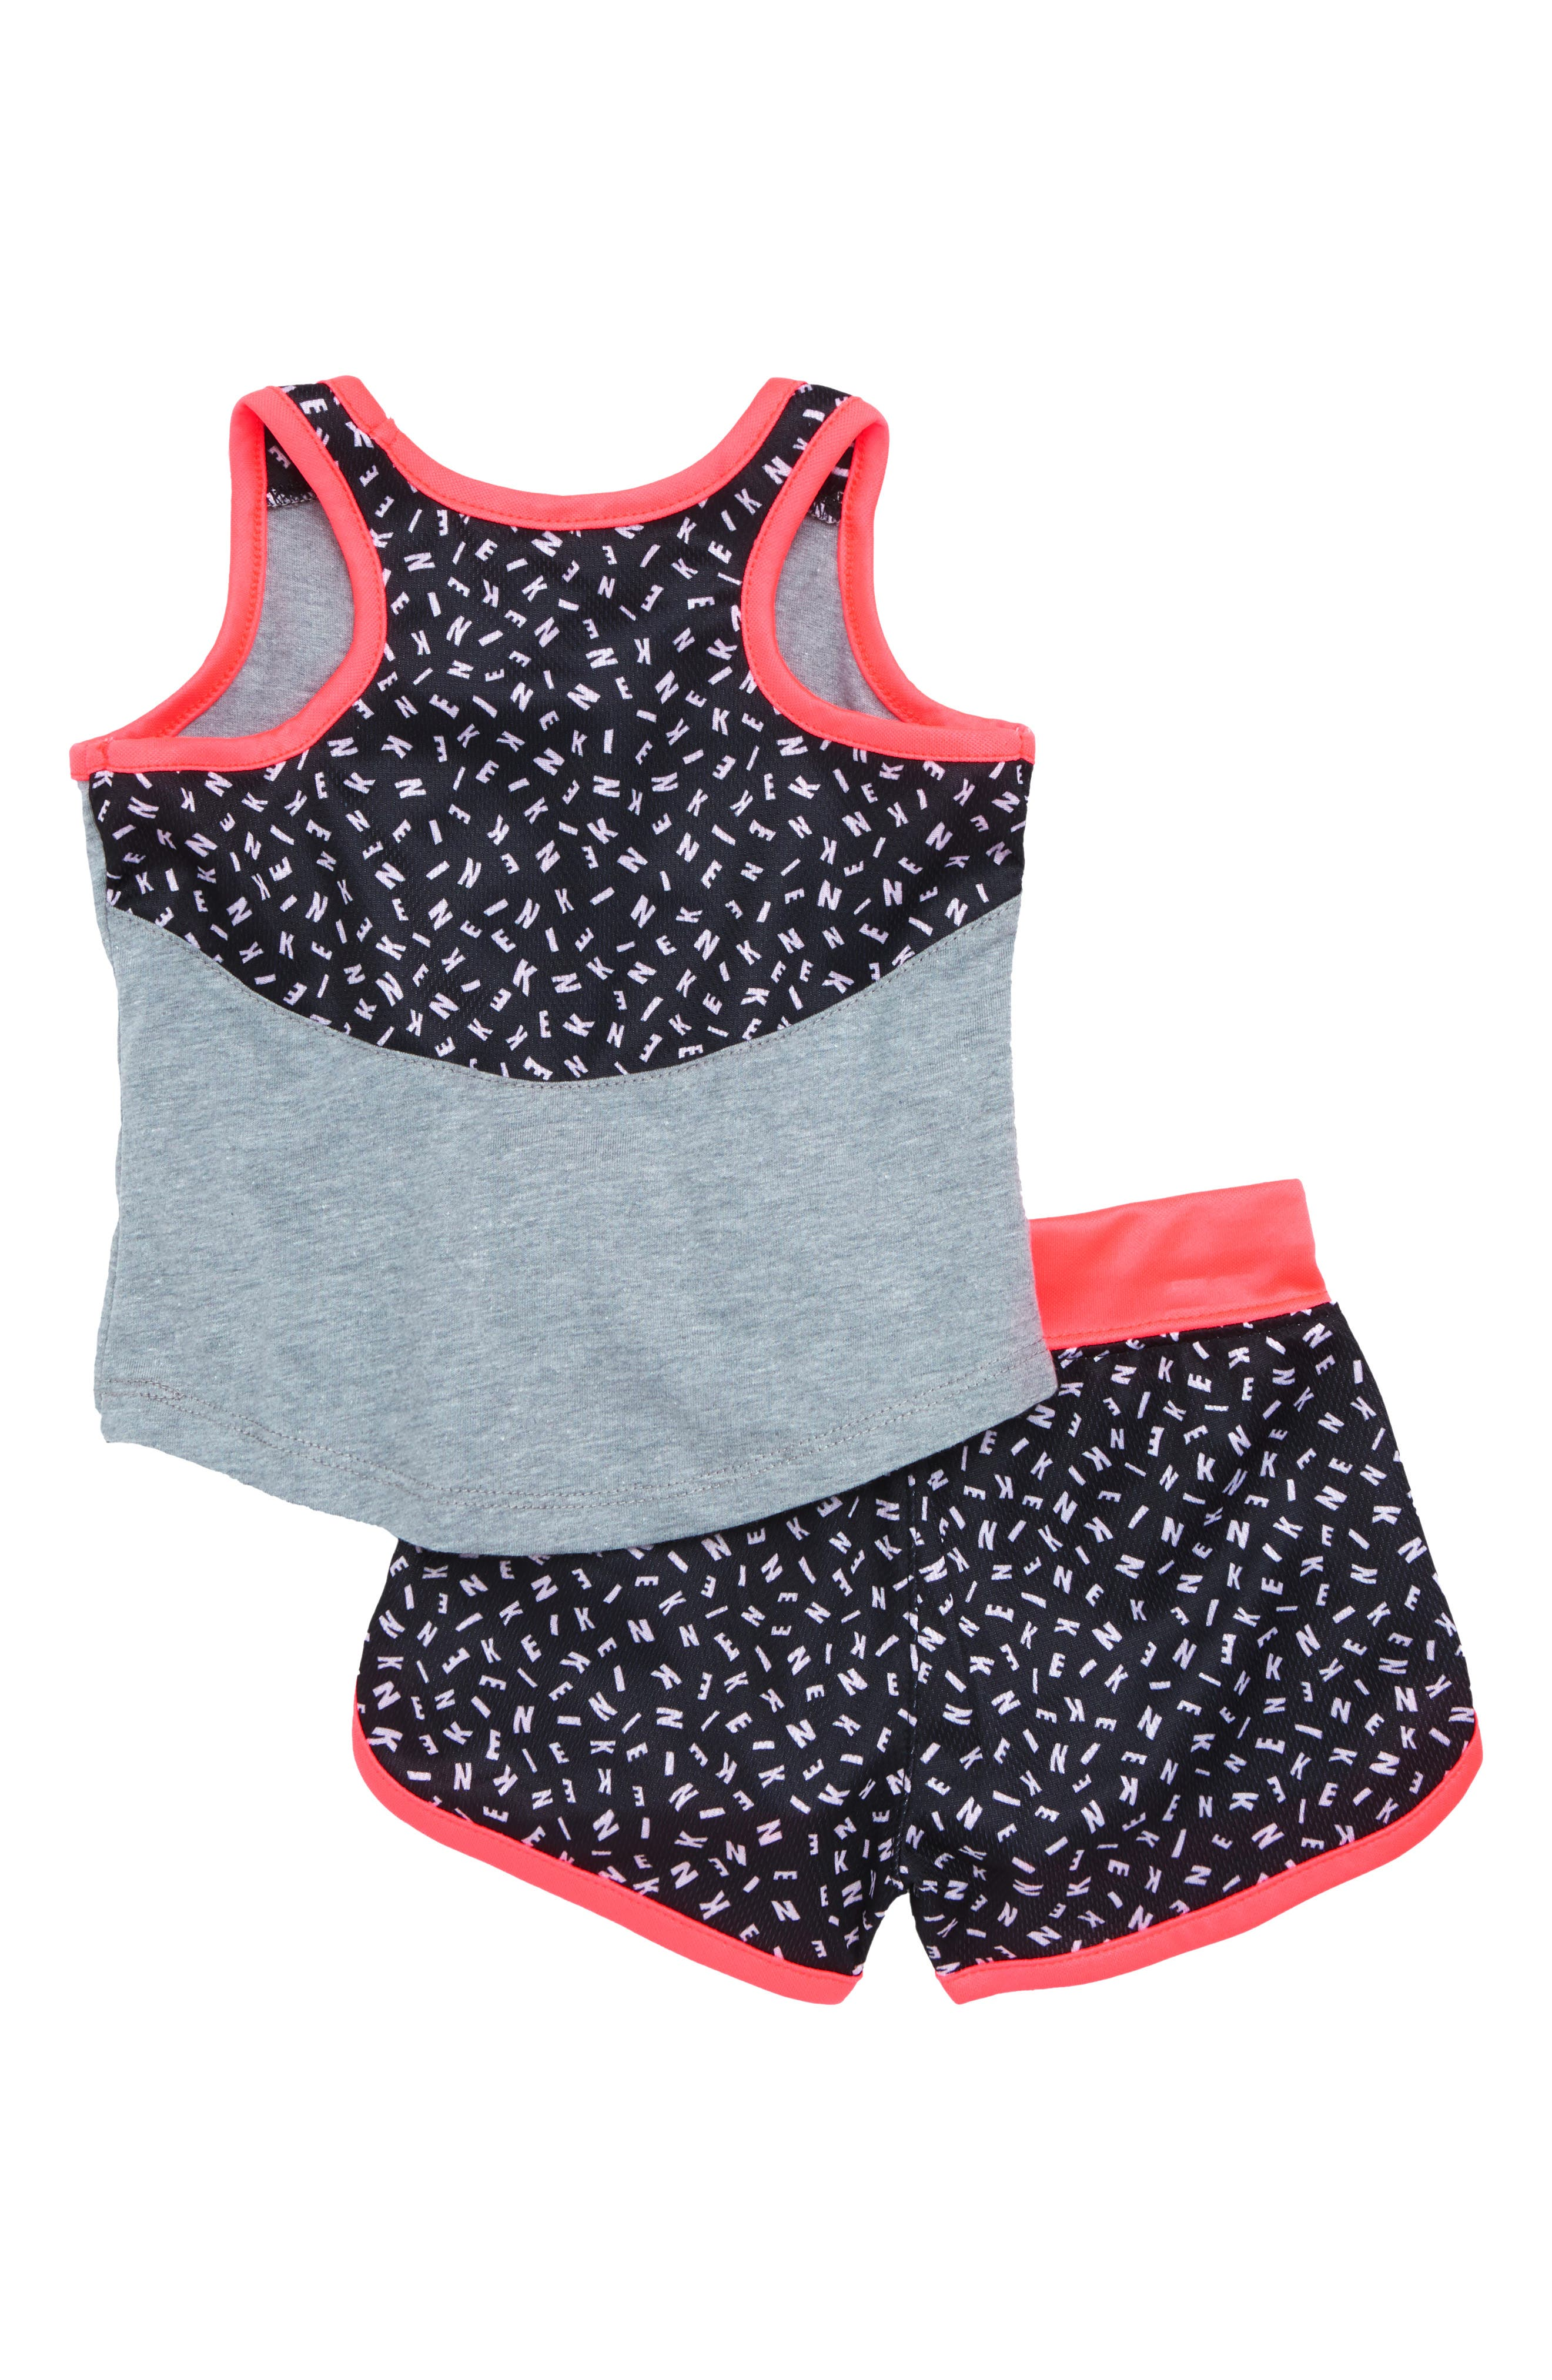 Just Dot It Tank & Shorts Set,                             Alternate thumbnail 2, color,